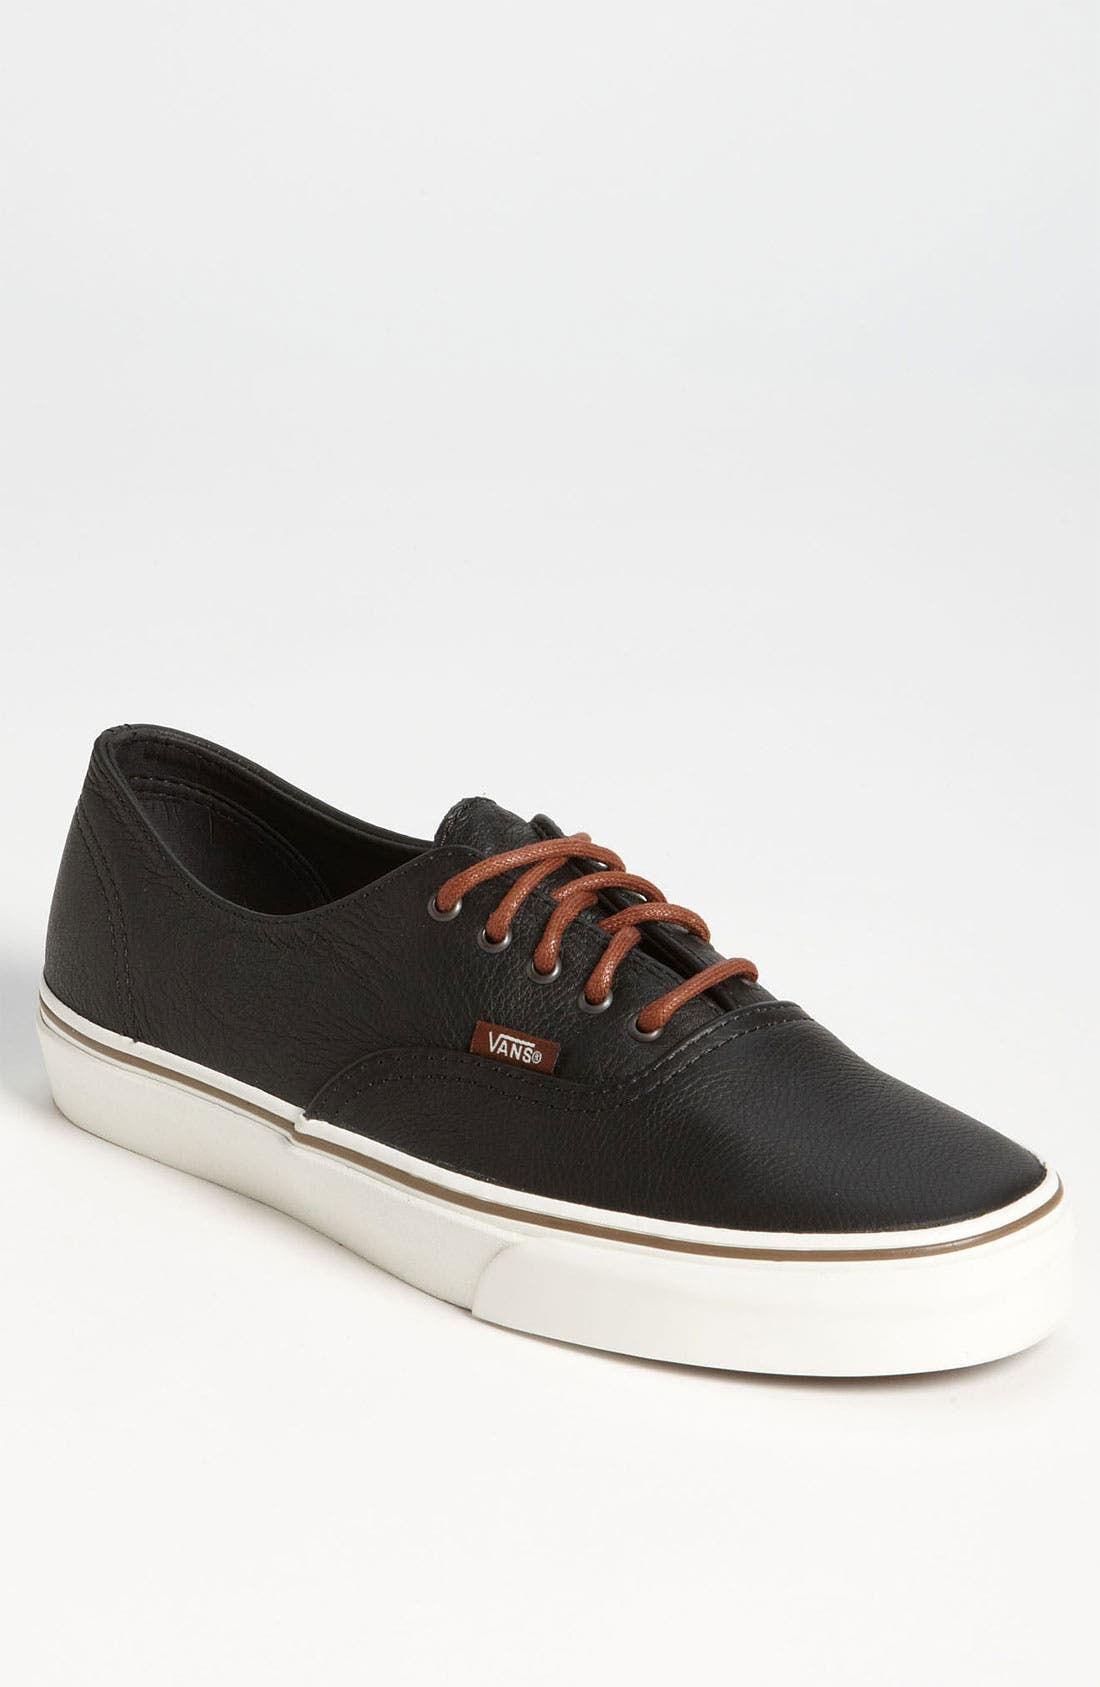 Main Image - Vans 'Cali - Authentic Decon' Leather Sneaker (Men)